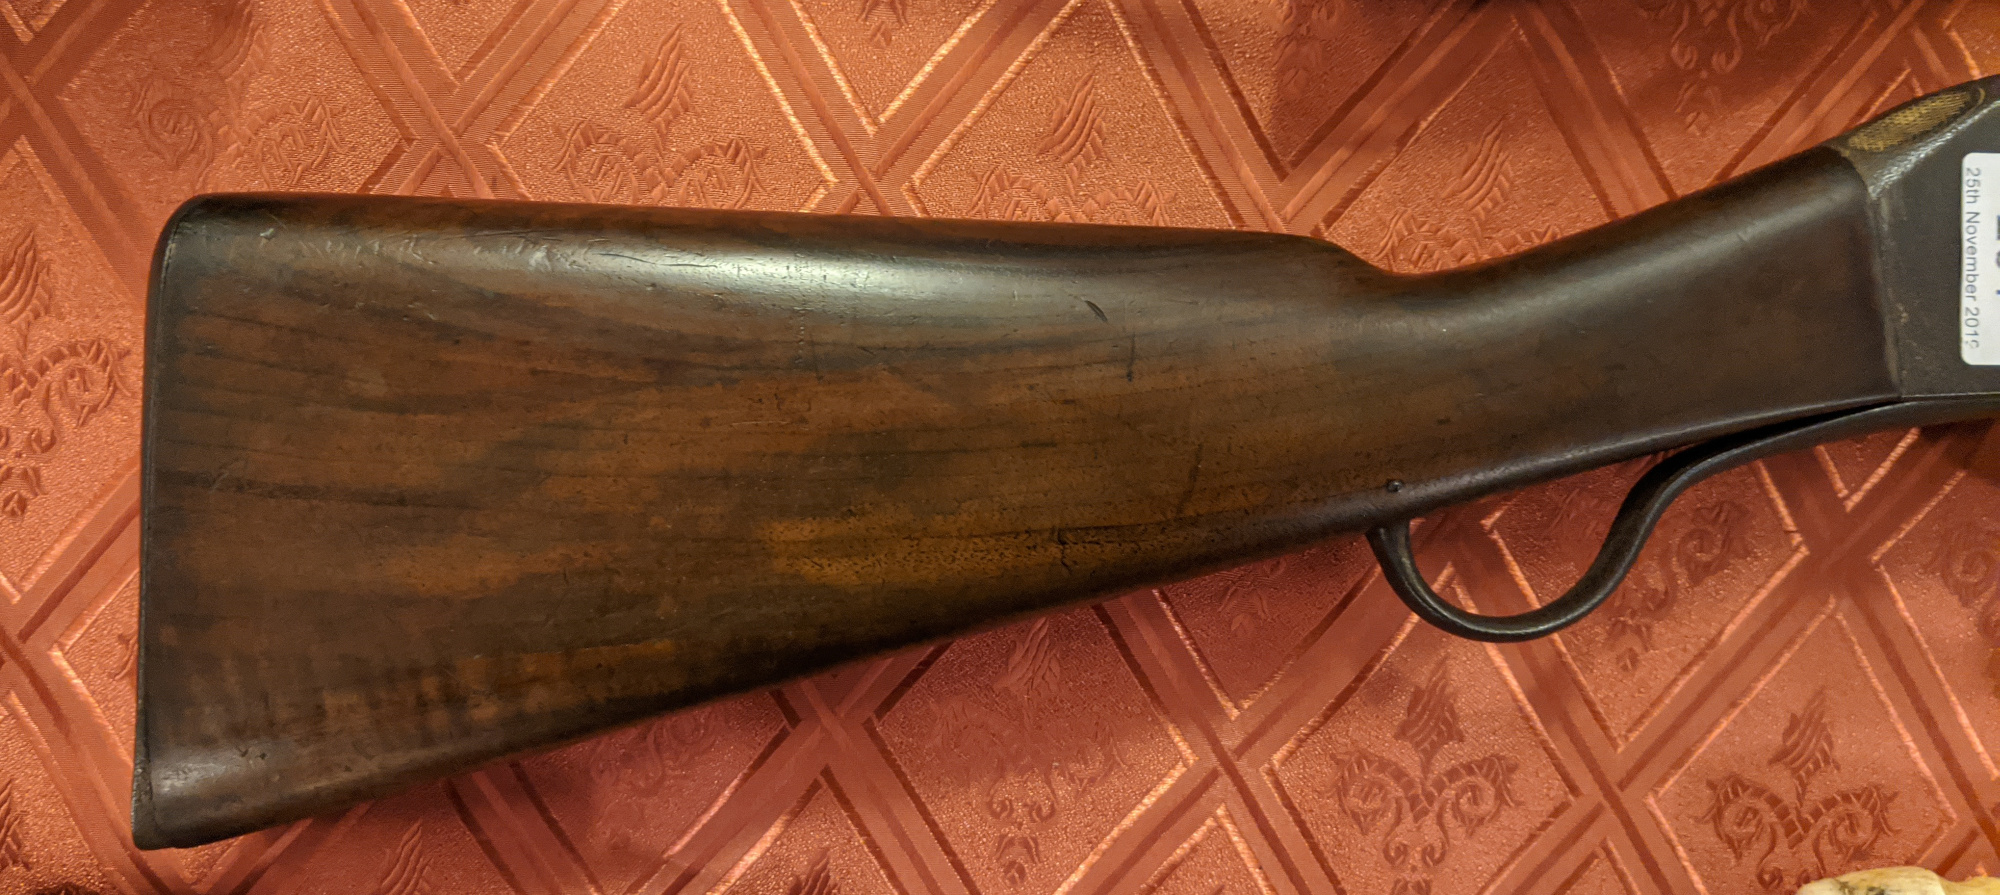 Lot 261 - A Martini Henry .577 rifle. With walnut fullstock, ramrod and adjustable ladder sights. Barrel 83cm.